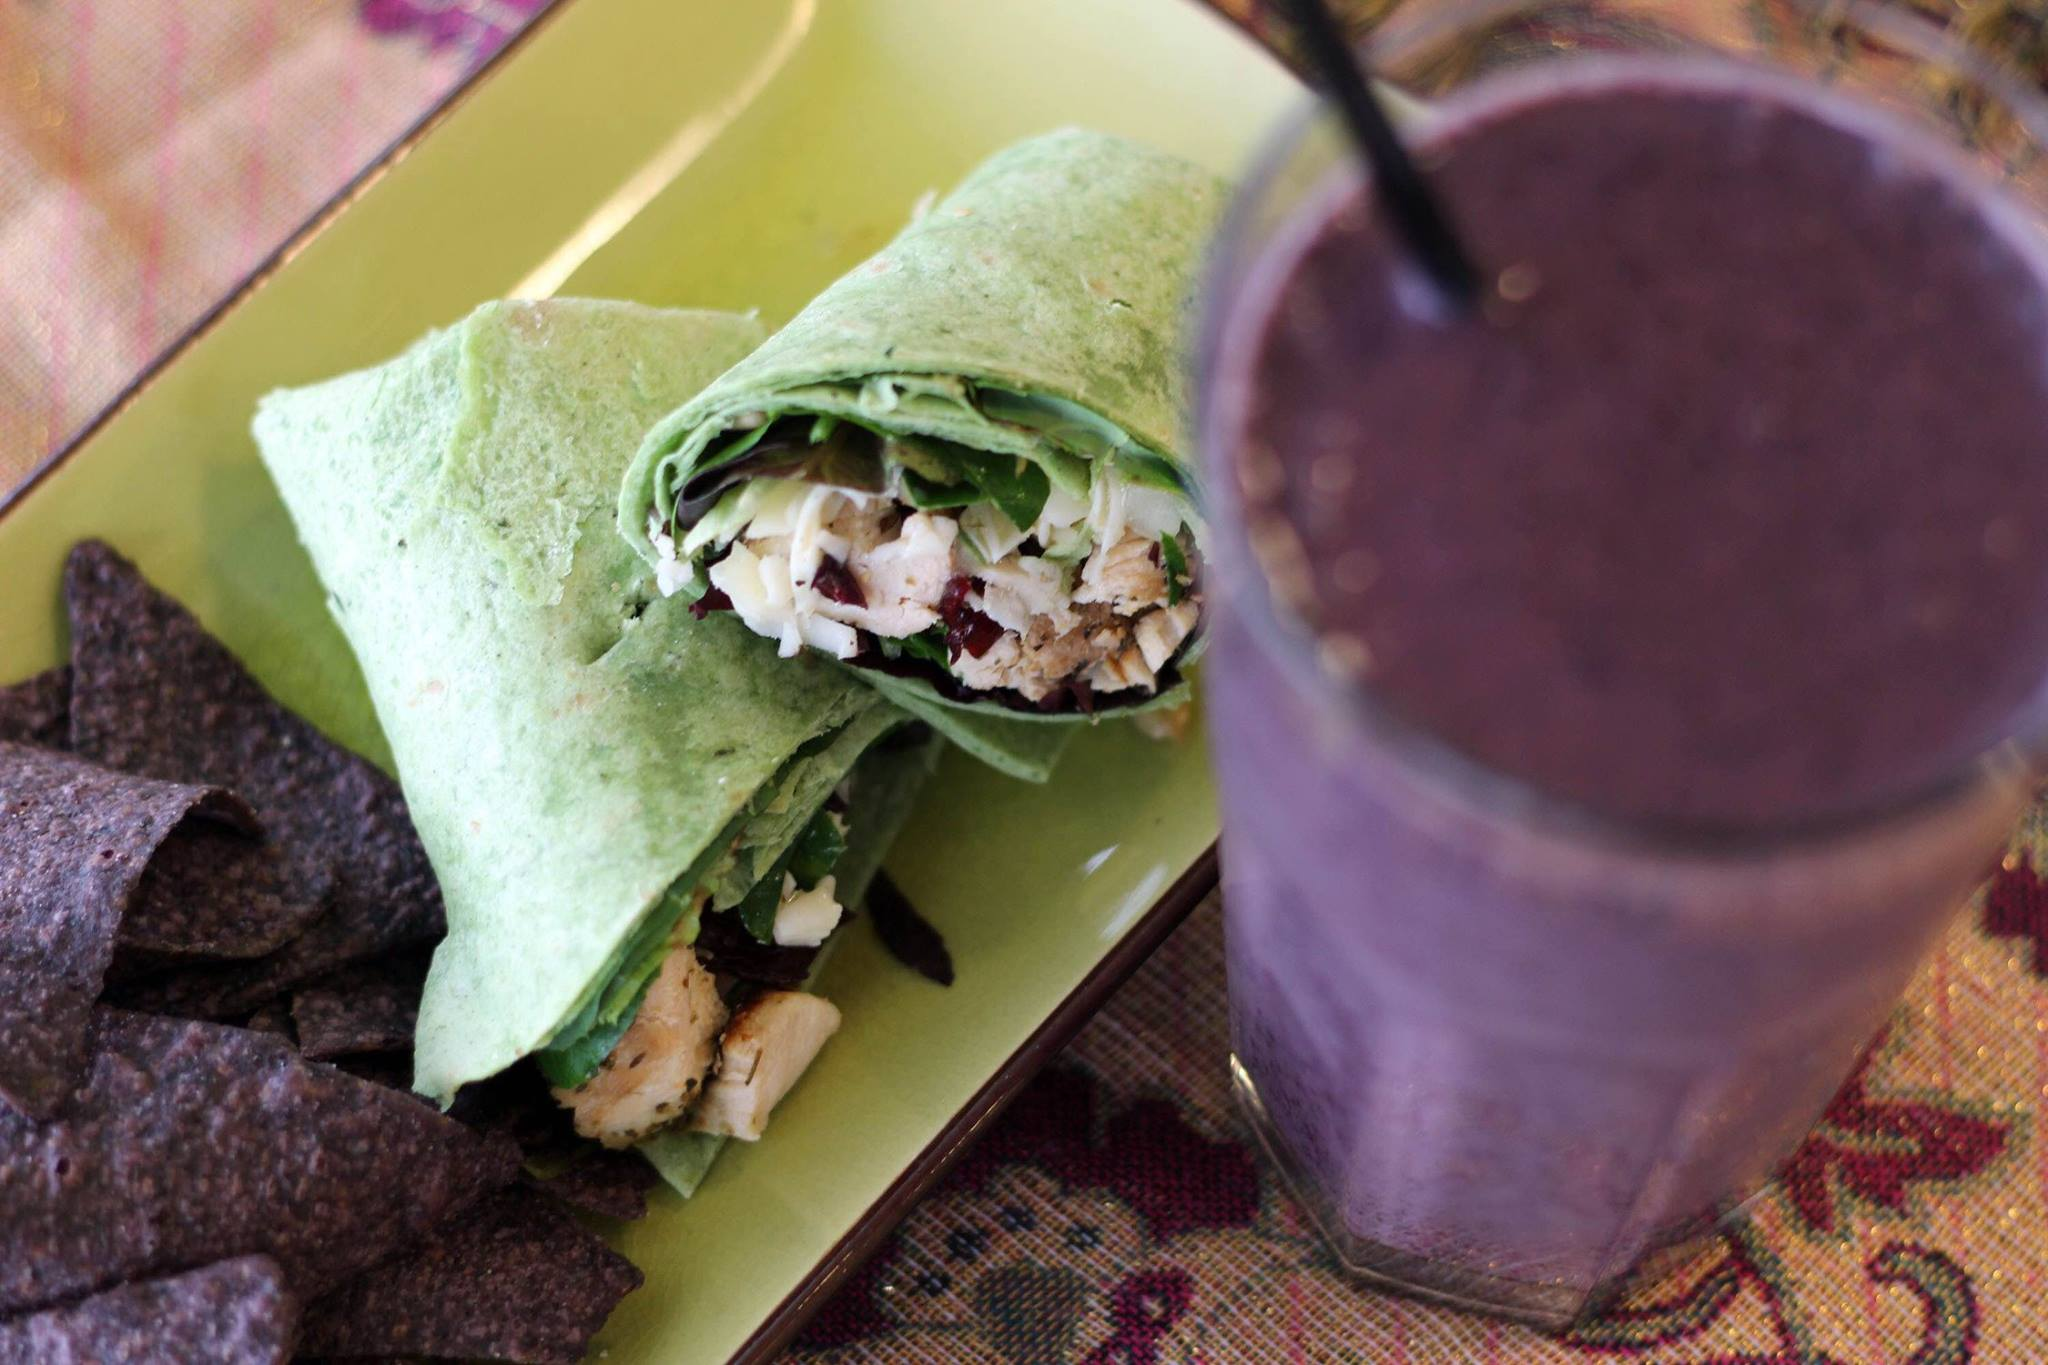 A spinach wrap filled with grilled chicken, cheese and lettuce, next to a smoothie.